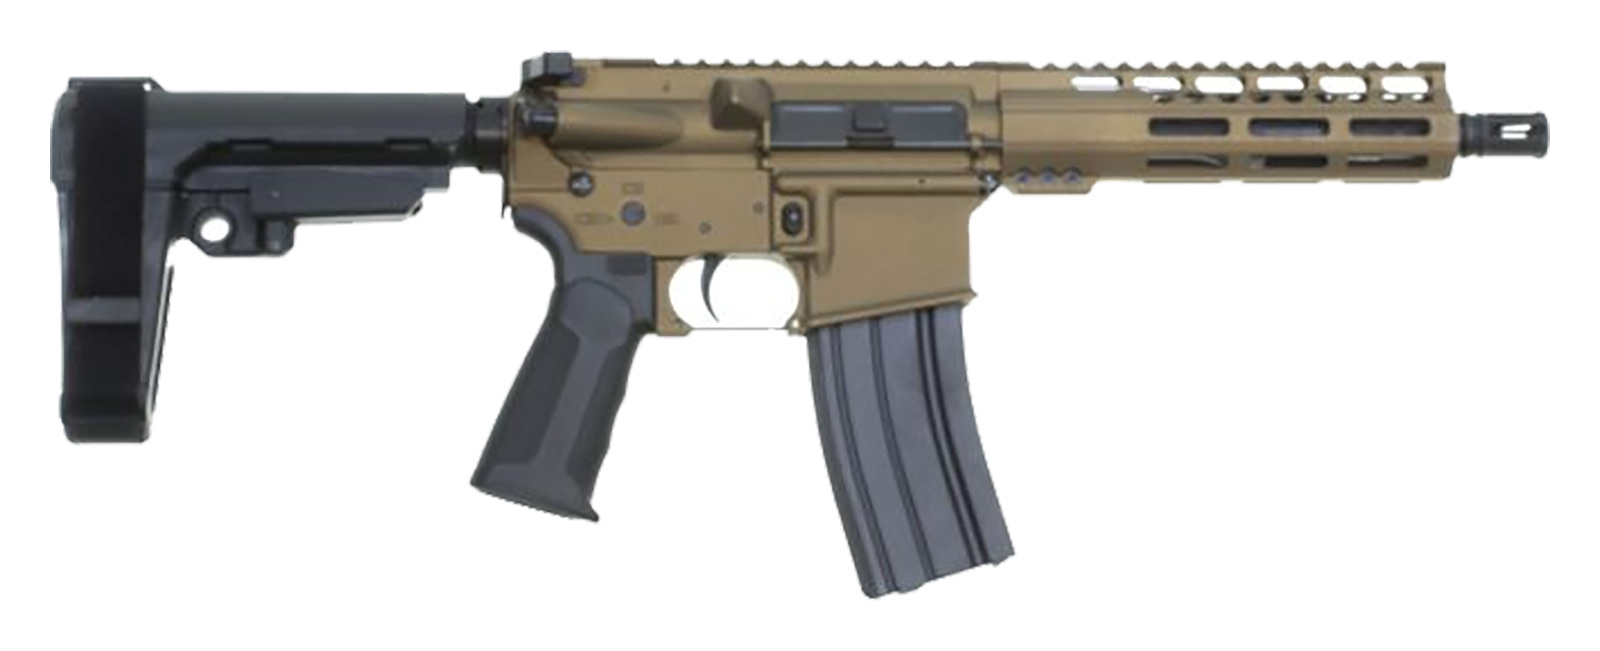 cbc-ps2-forged-aluminum-ar-pistol-burnt-bronze-5-56-nato-7-5-barrel-7-m-lok-rail-sb3-brace